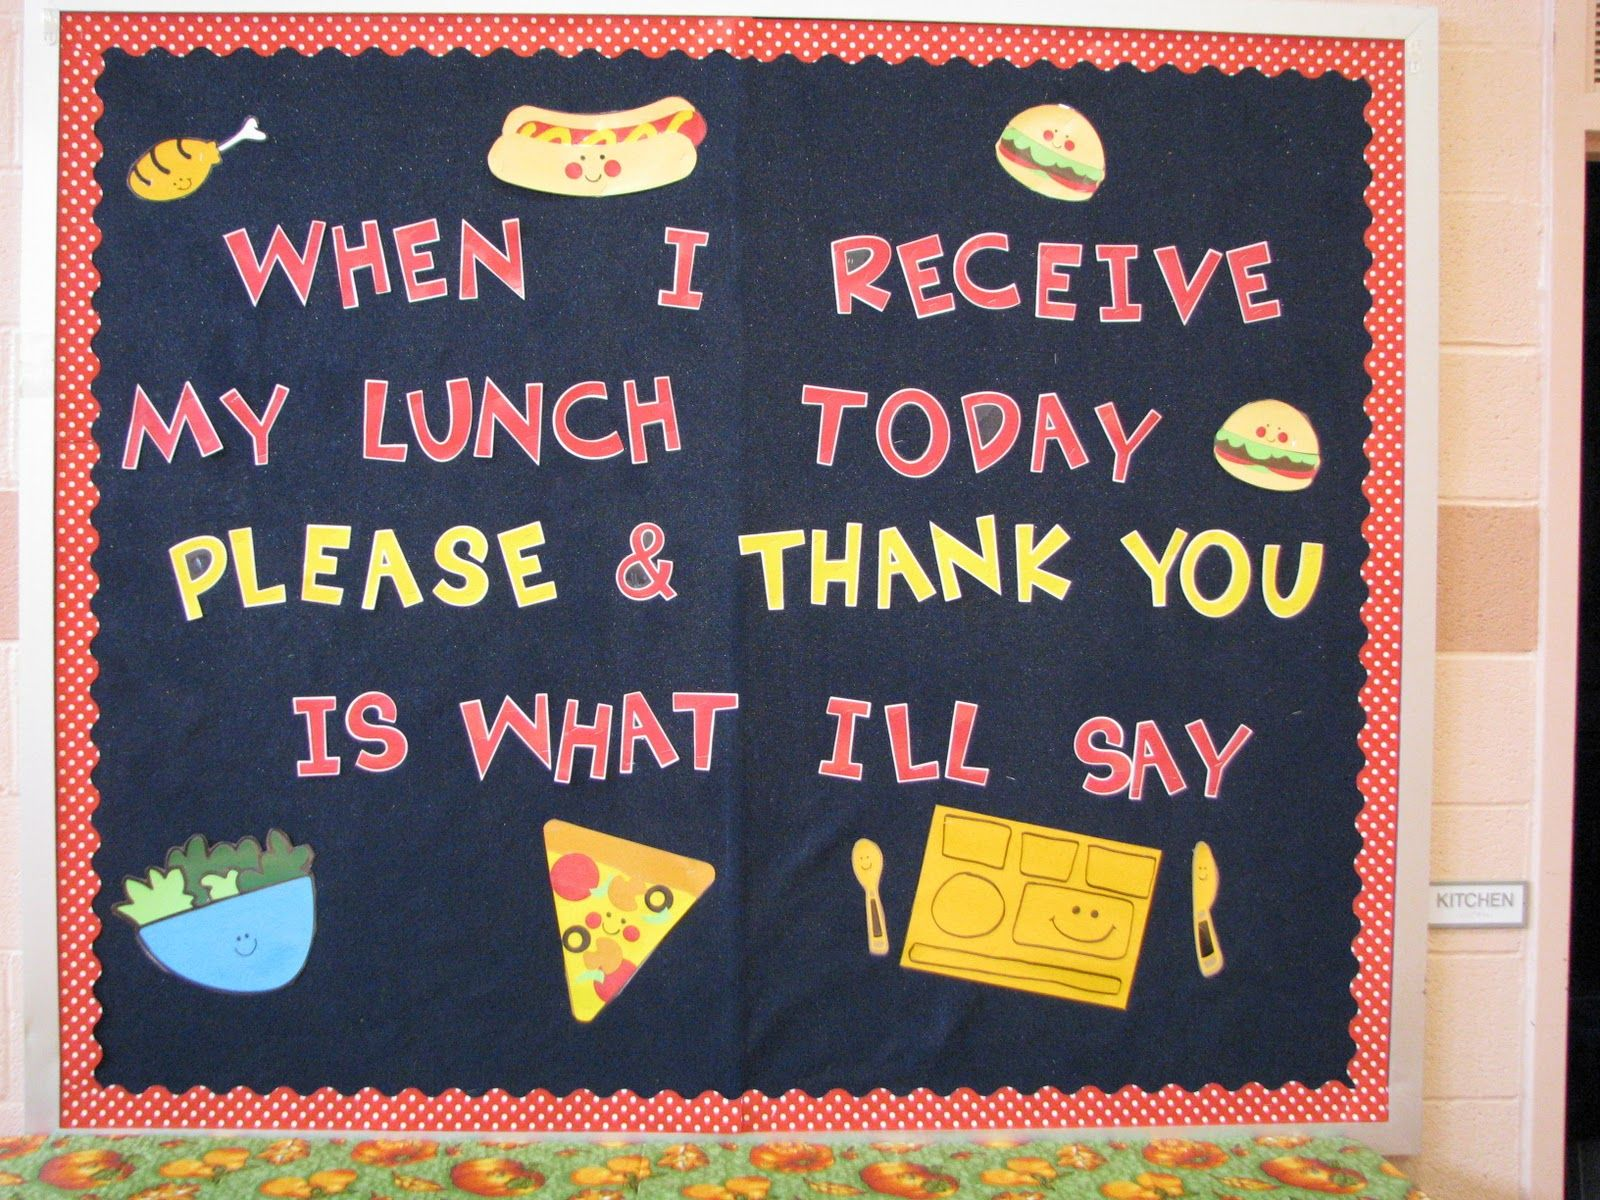 School Cafeteria Bulletin Boards | ... Weeks Ago About The Lack Of Manners  I Was Seeing In The Cafeteria